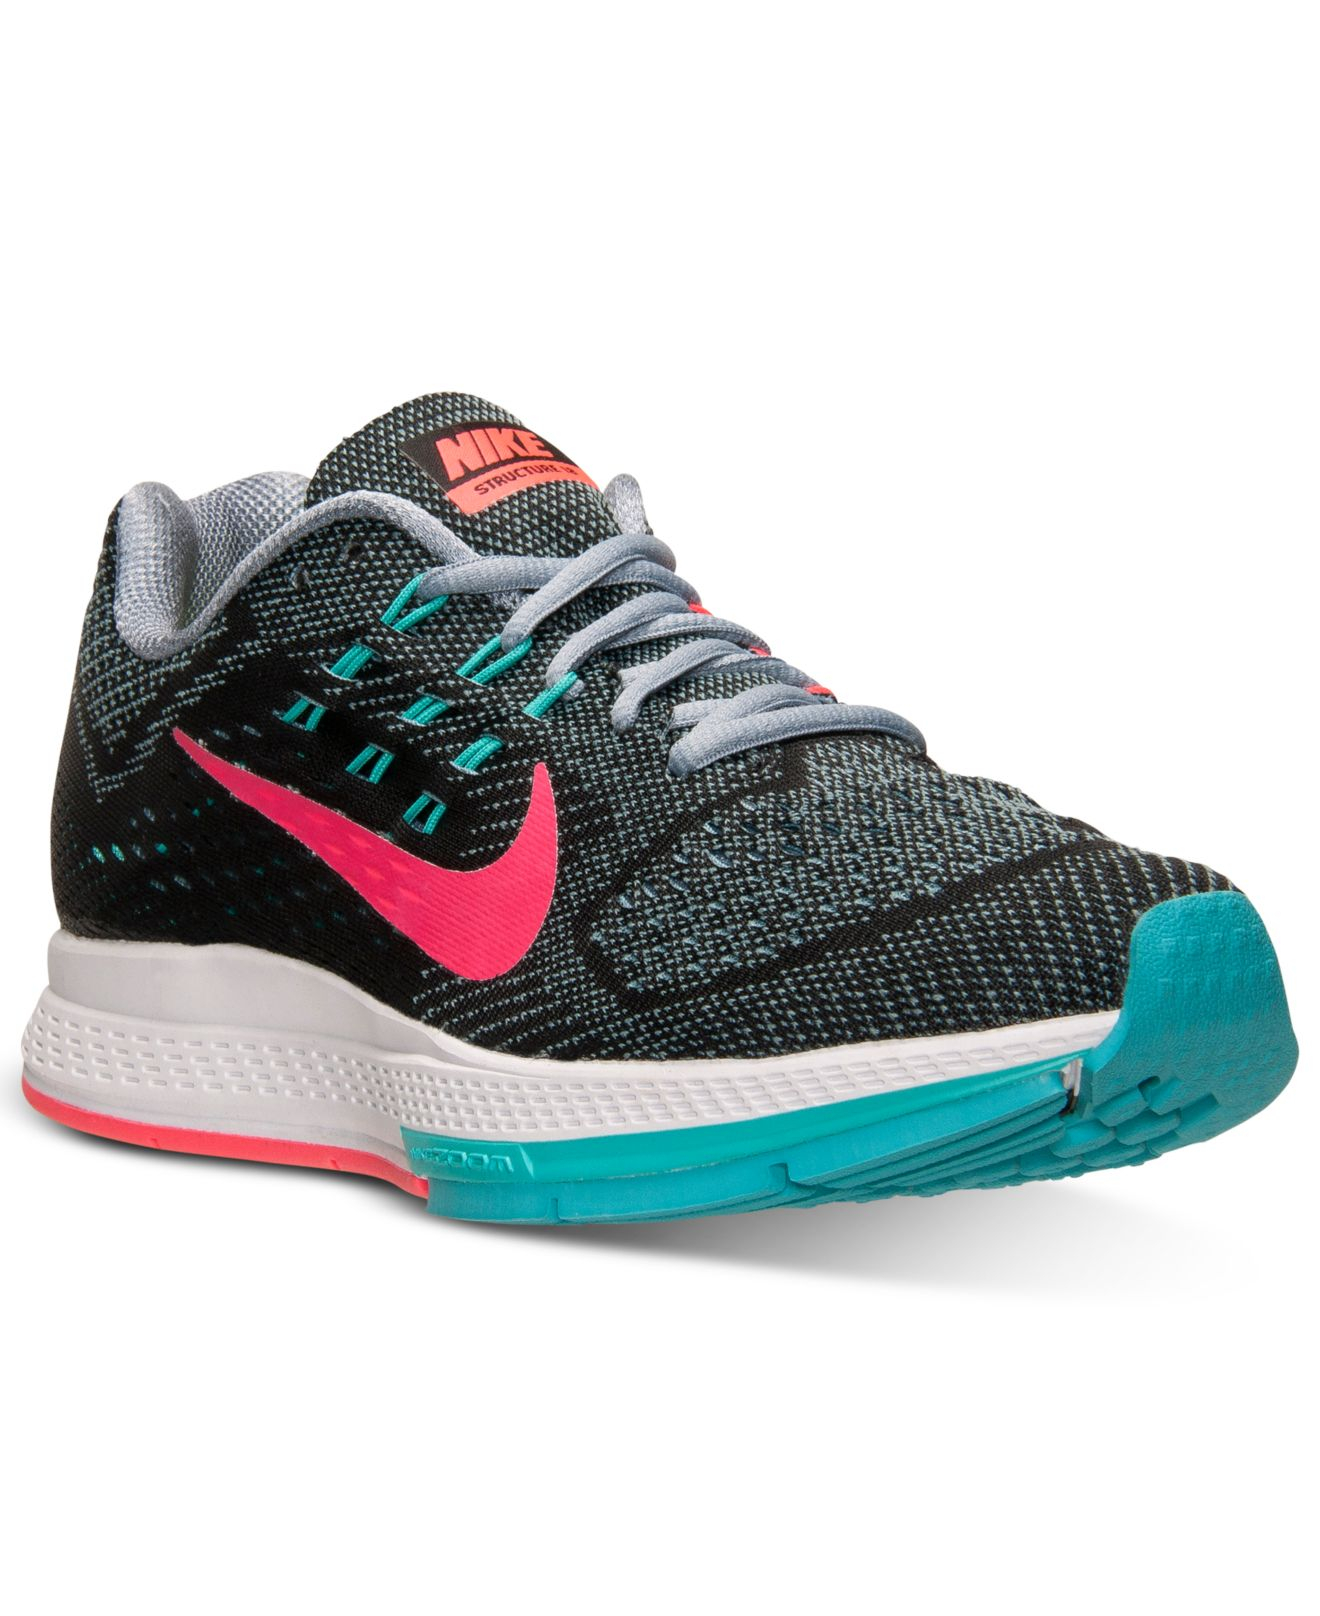 nike zoom structure 18 gul rosa - nike zoom structure 18 gul rosa